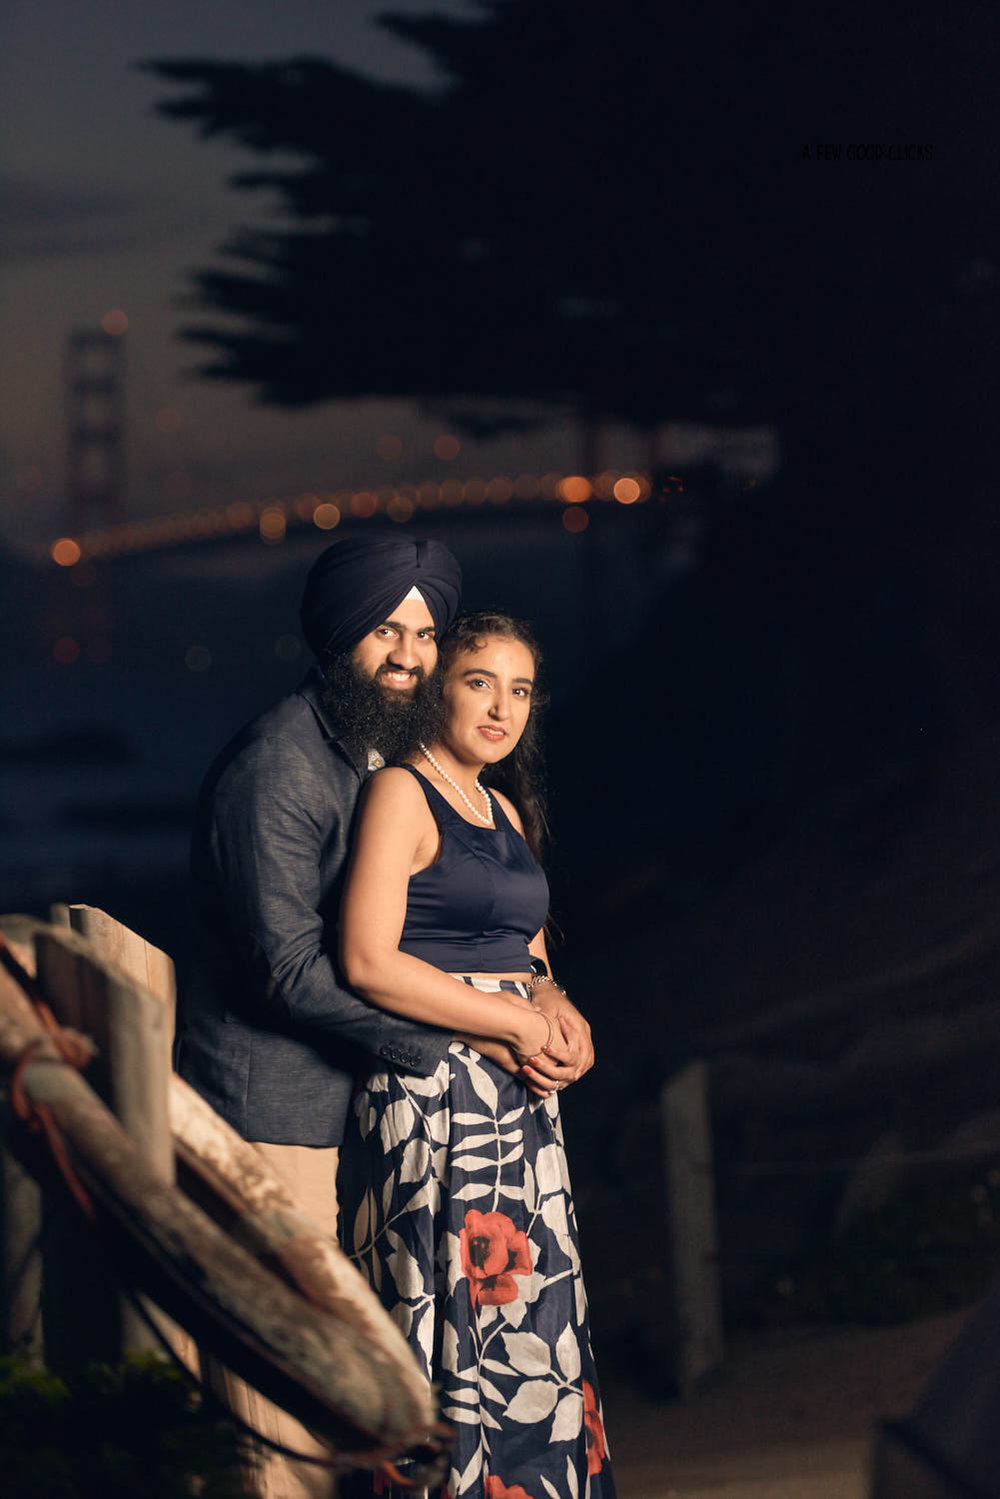 bakers-beach-engagement-session-photography-san-francisco+47.jpg